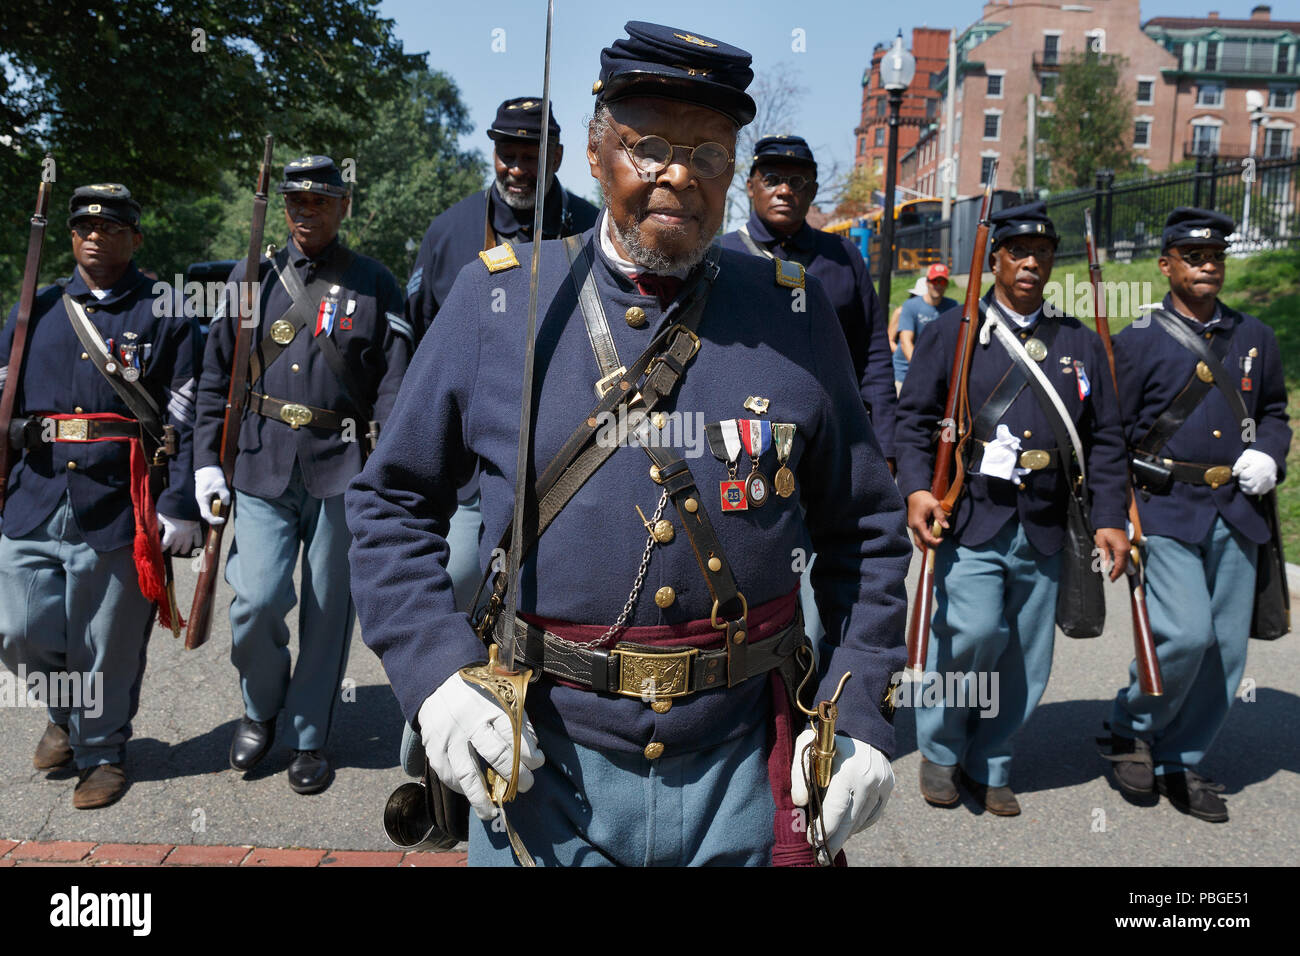 American Civil War re-enactors from Massachusetts 54th Infantry Regiment in front of the Shaw 54th memorial on Boston Common Boston Massachusetts USA - Stock Image